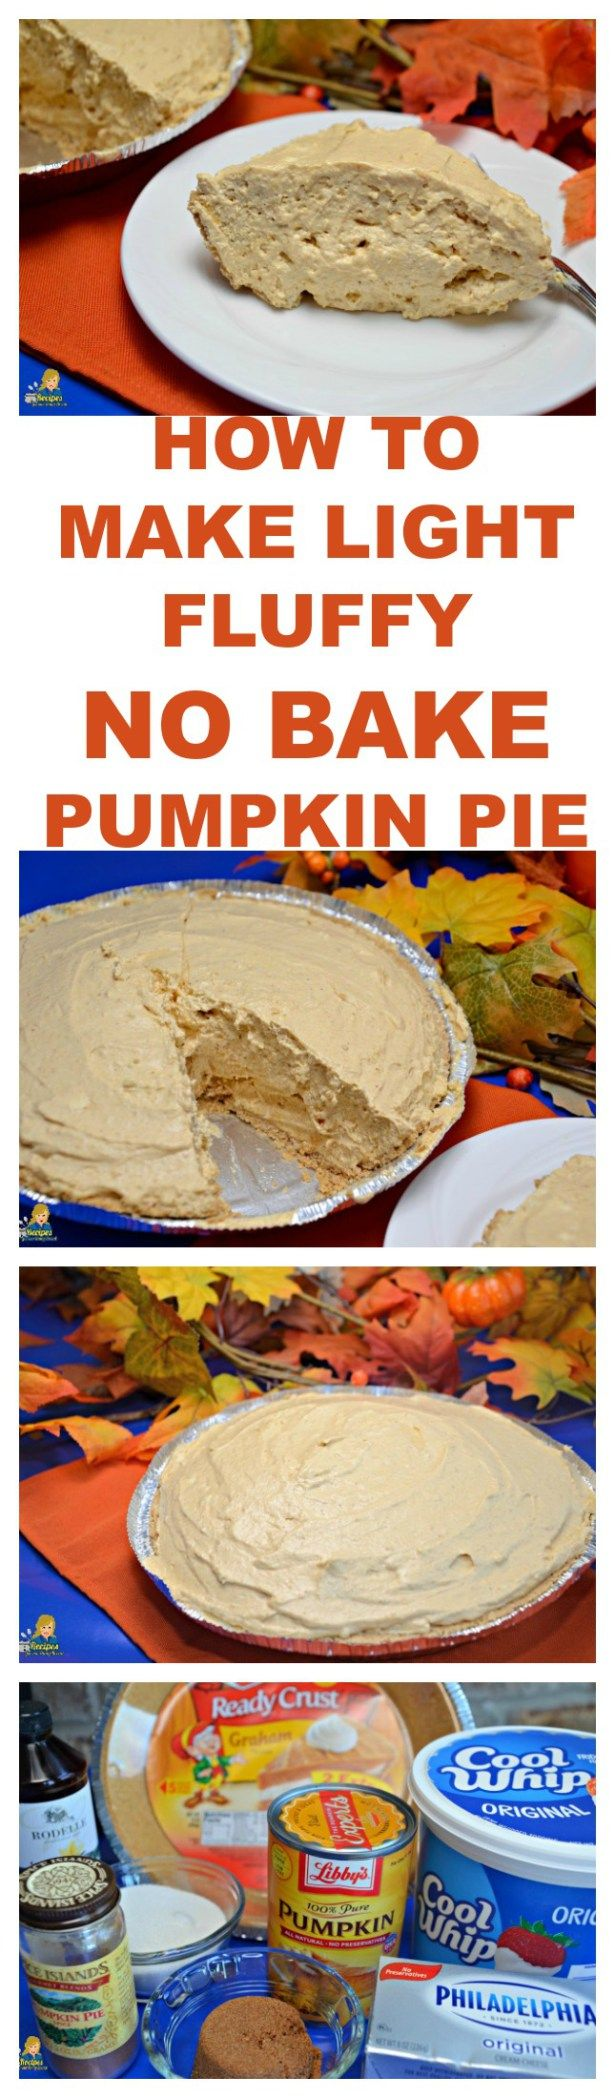 What is in this No Bake pumpkin pie? Can pumpkin, pumpkin pie spice, brown sugar, sugar, and vanilla, cream cheese, & Cool Whip MAKES THE BEST PUMPKIN PIE!